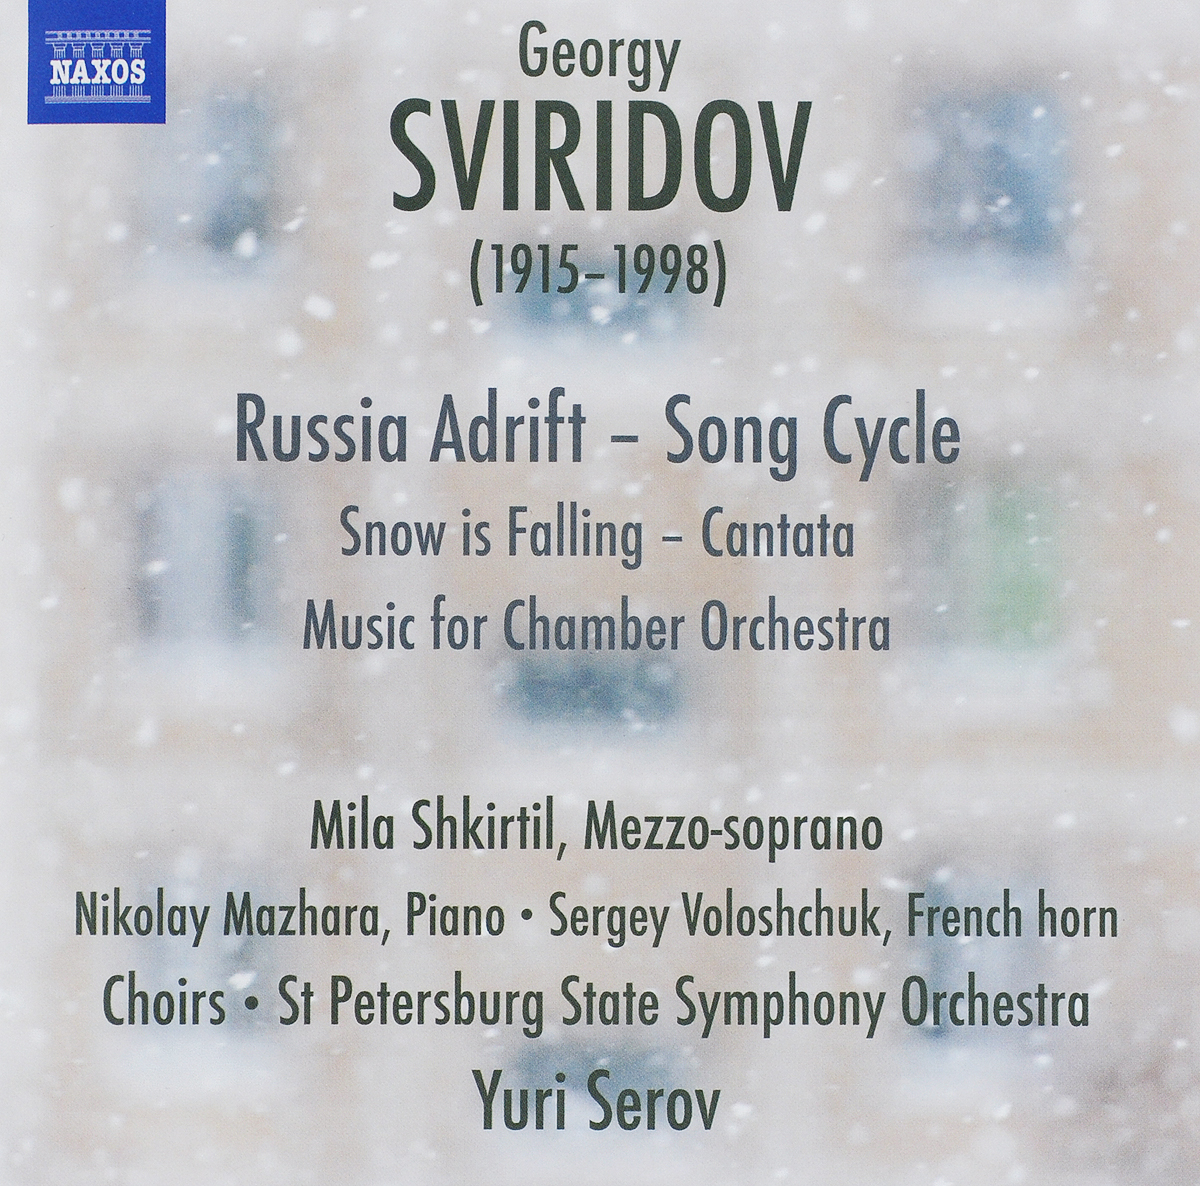 Mila Shkirtil,Nikolay Mazhara,Sergey Voloshchuk Mila Shkirtil, Nikolay Mazhara, Sergey Voloshchuk, French Horn Choirs, St Petersburg State Symphony Orchestra, Yuri Serov. Georgy Sviridov: Russia Adrift - Song Cycle, Snow Is Falling, Music For Chamber Orchestra sergey shirin education inrussia in